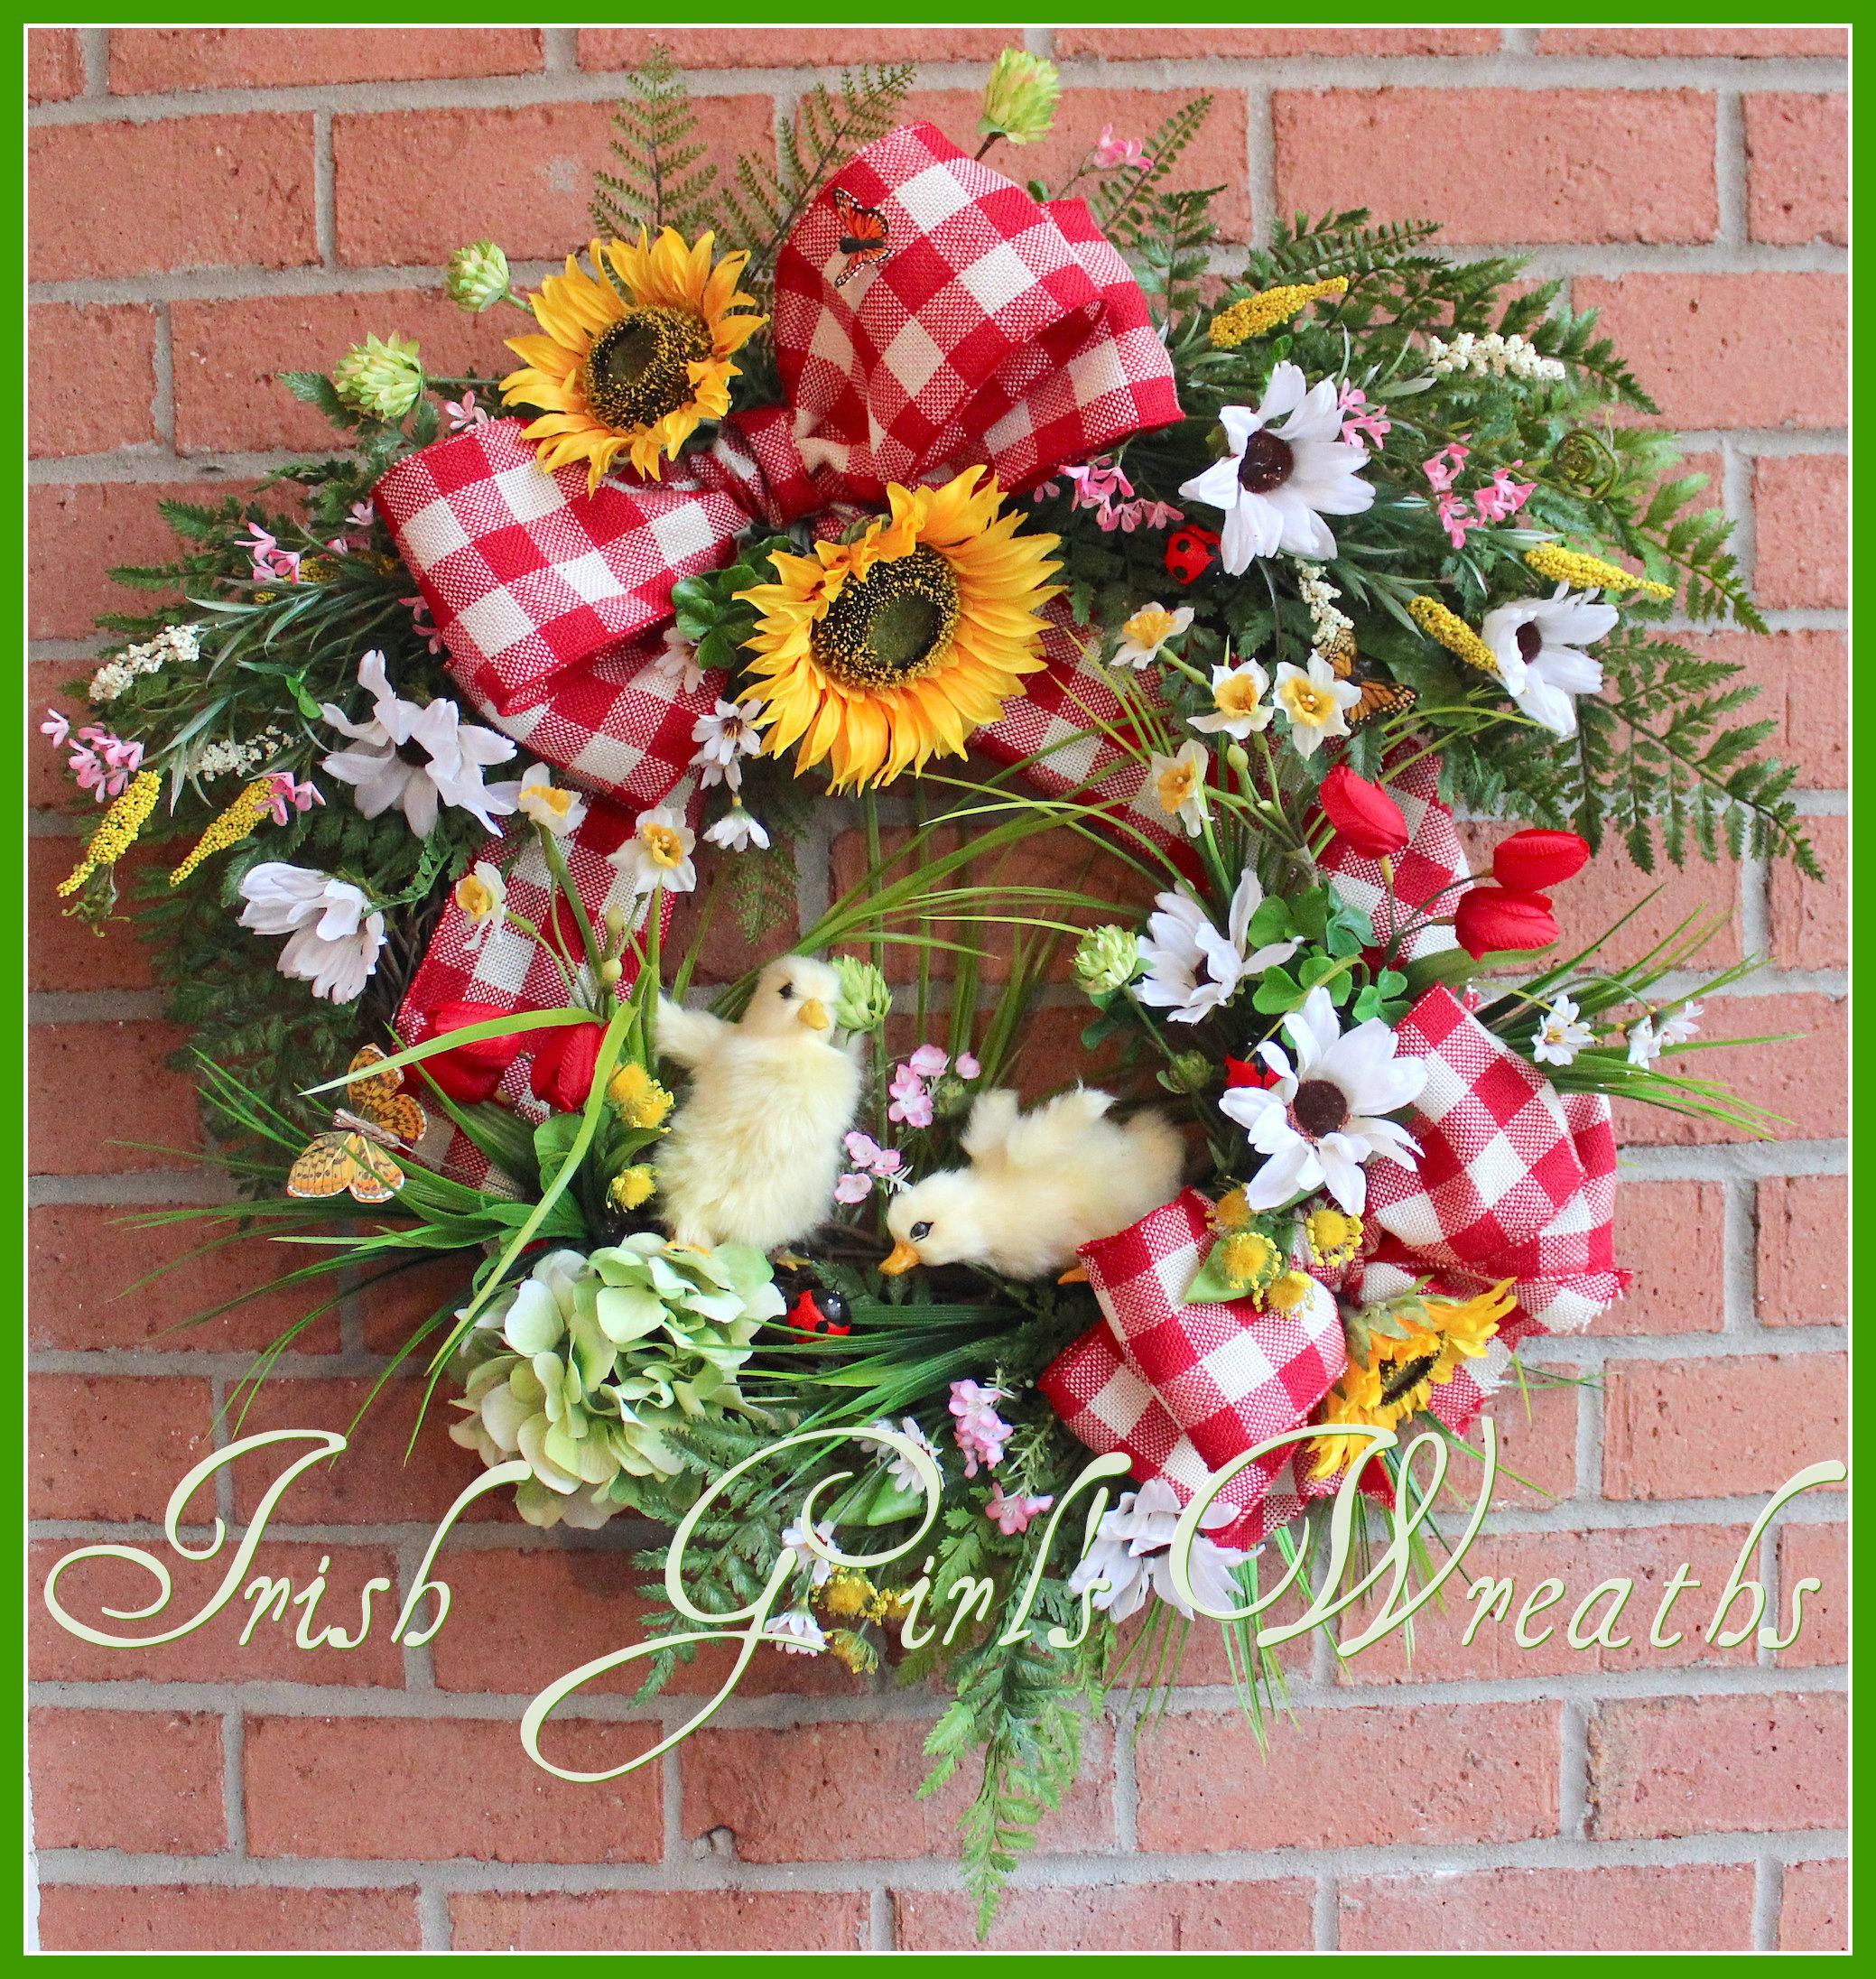 Baby Ducklings on the Farm Spring Wreath, Sunflower & Daisy Red Gingham Country Summer Wreath, butterfly, ladybug, tulip